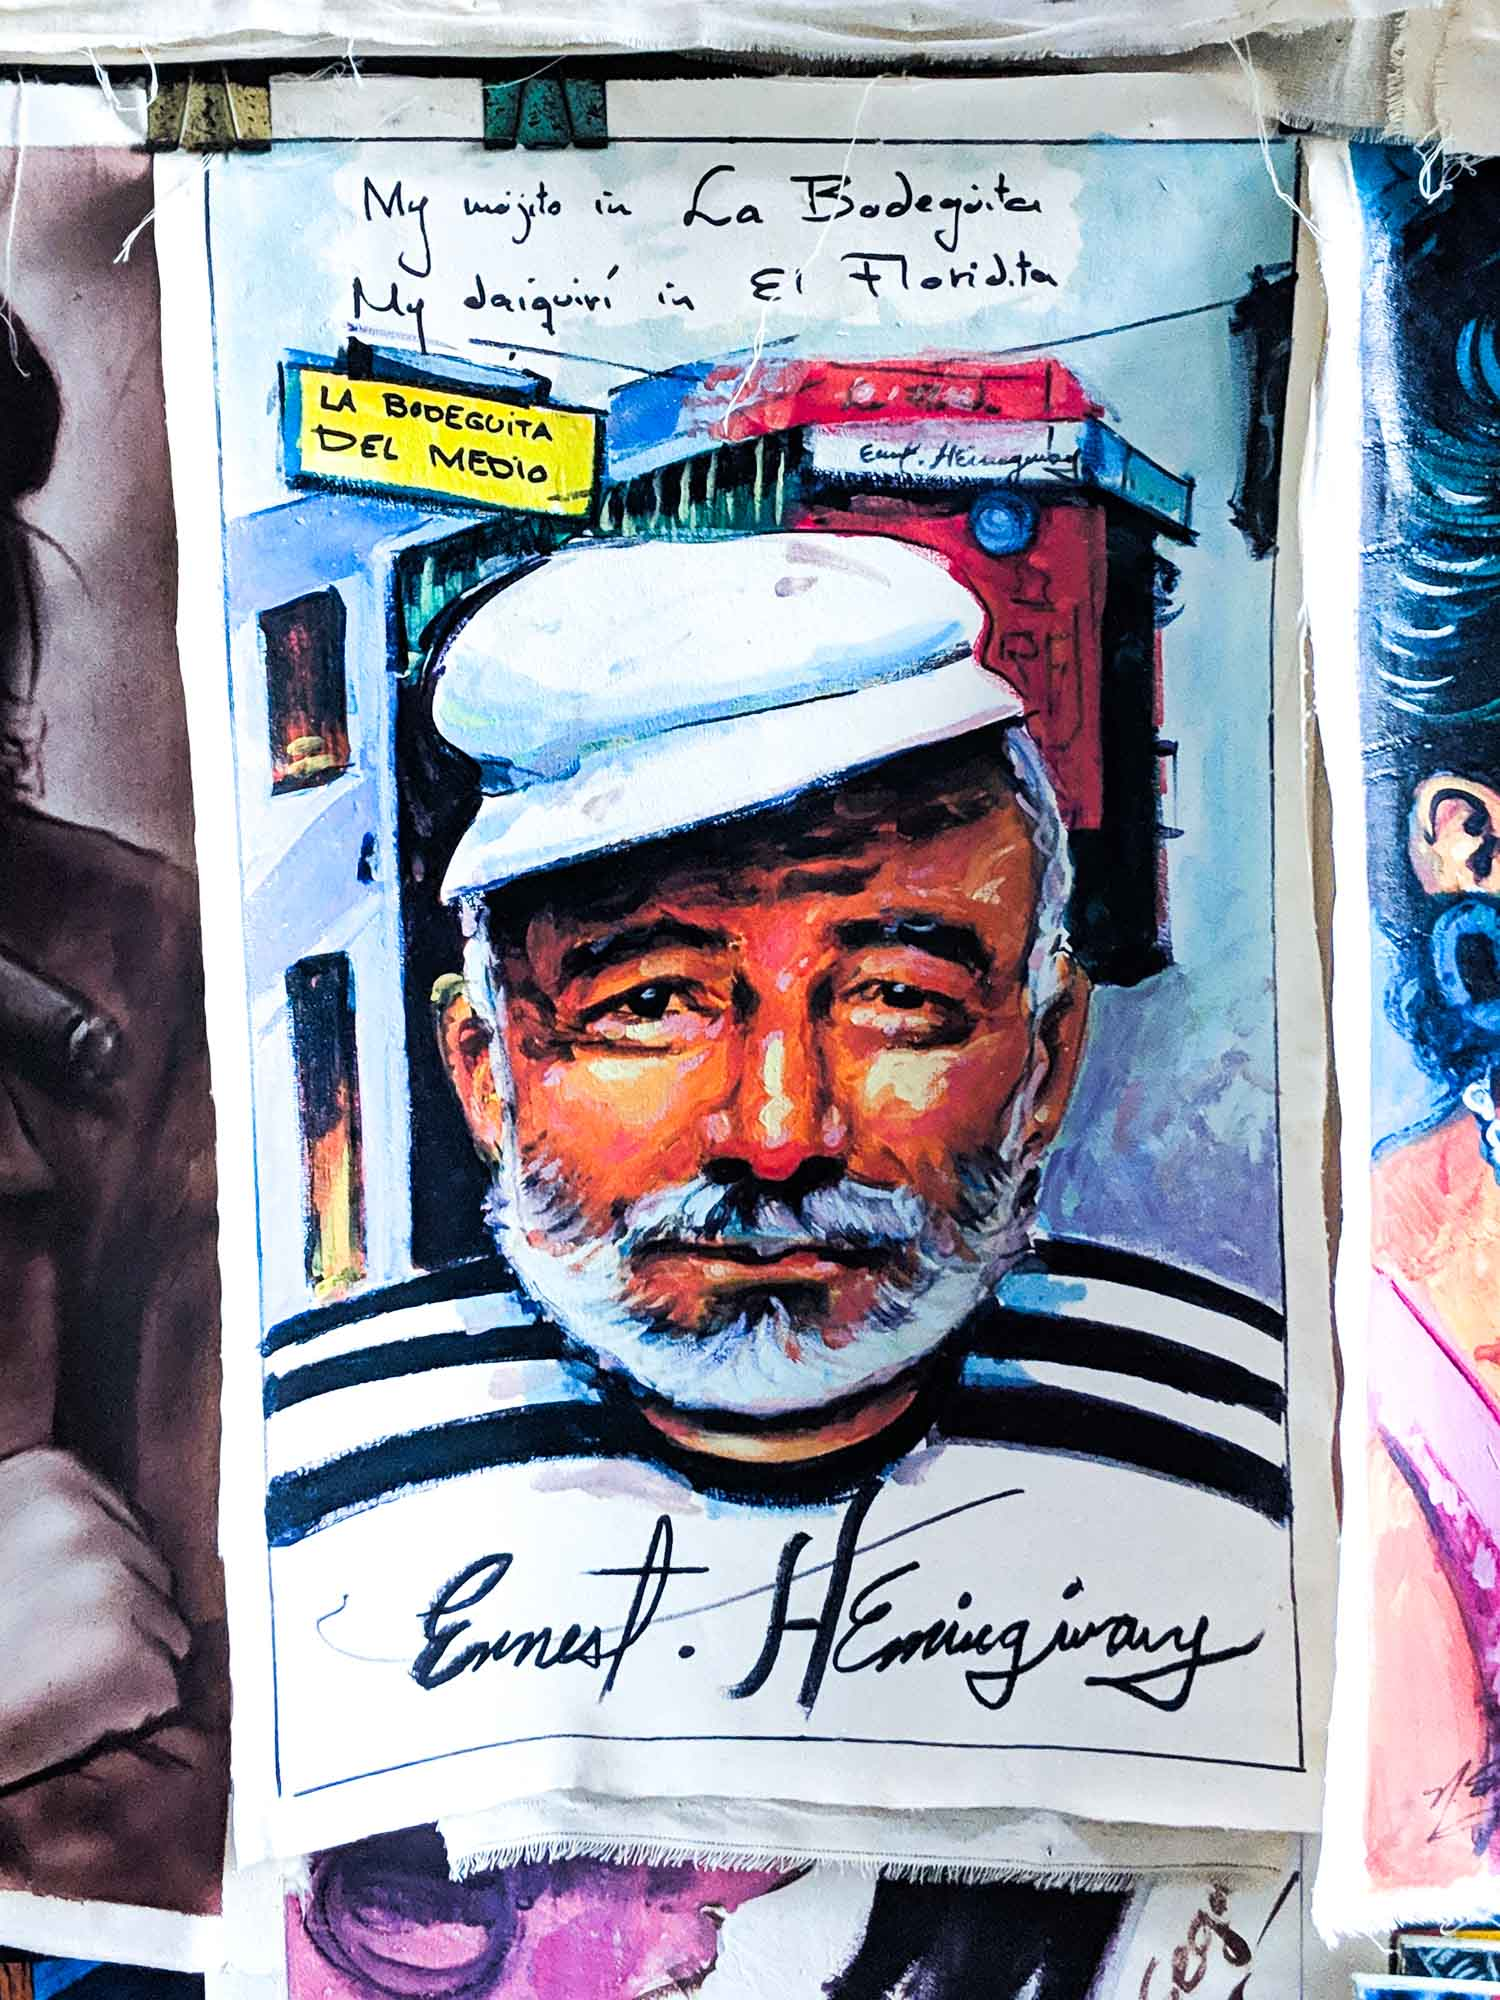 Hemingway in Cuba is a huge tourist draw, here are the things to do.